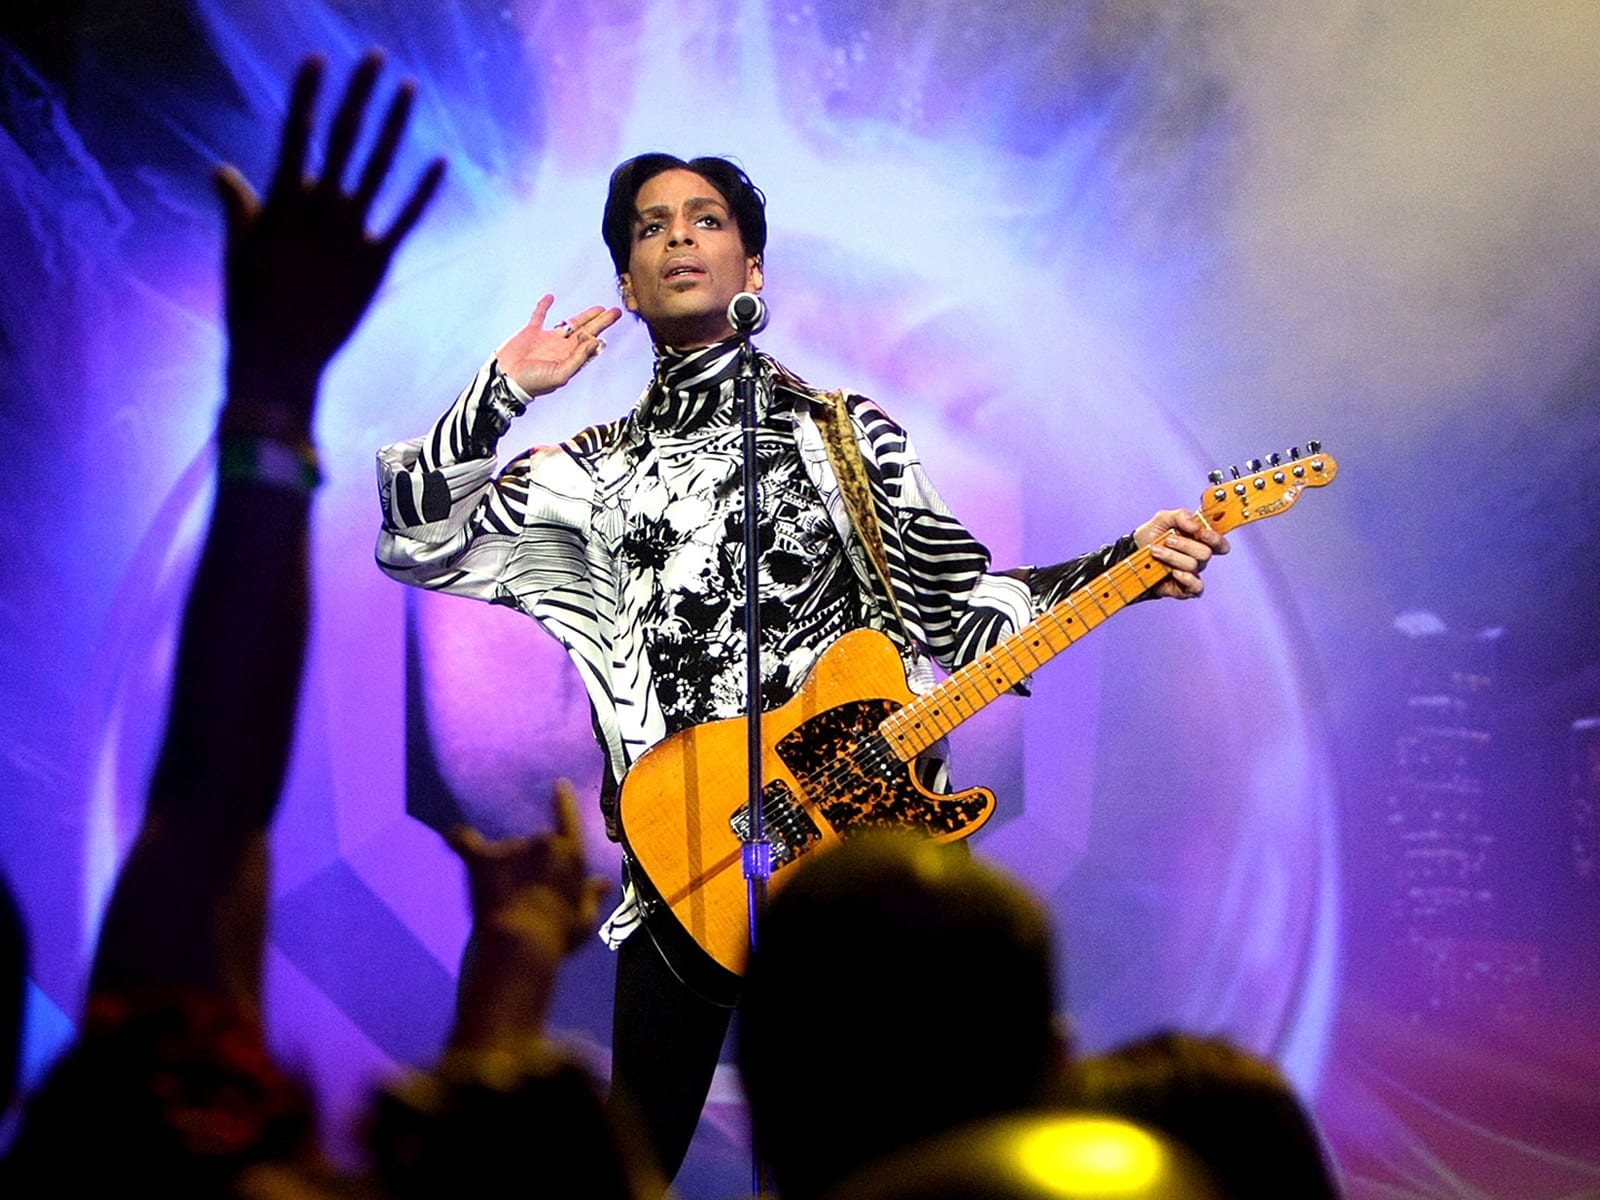 Opioid Medication Found on Prince at Time of Death - Freedom From Addiction